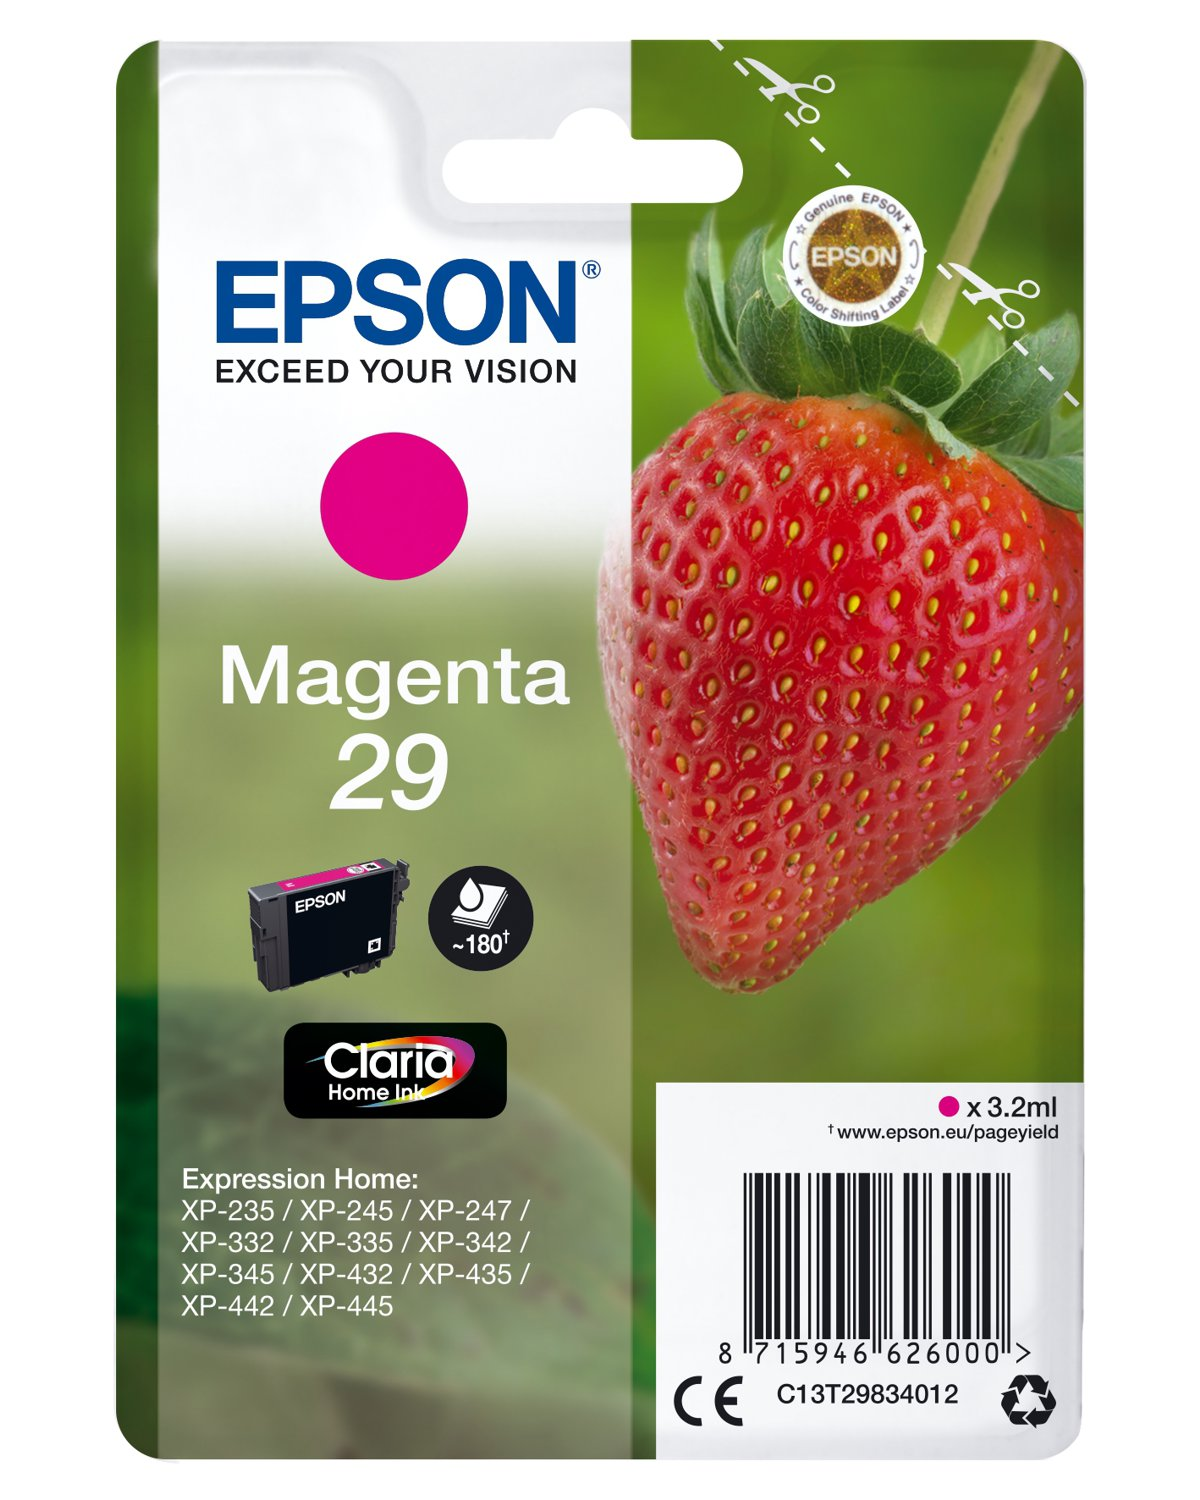 Find Every Shop In The World Selling Corio Ink Ml At Hp 81 680 Black Designjet Dye Cartridge Original Epson 29 32 Magenta Blister For Expression Home Xp 235 24